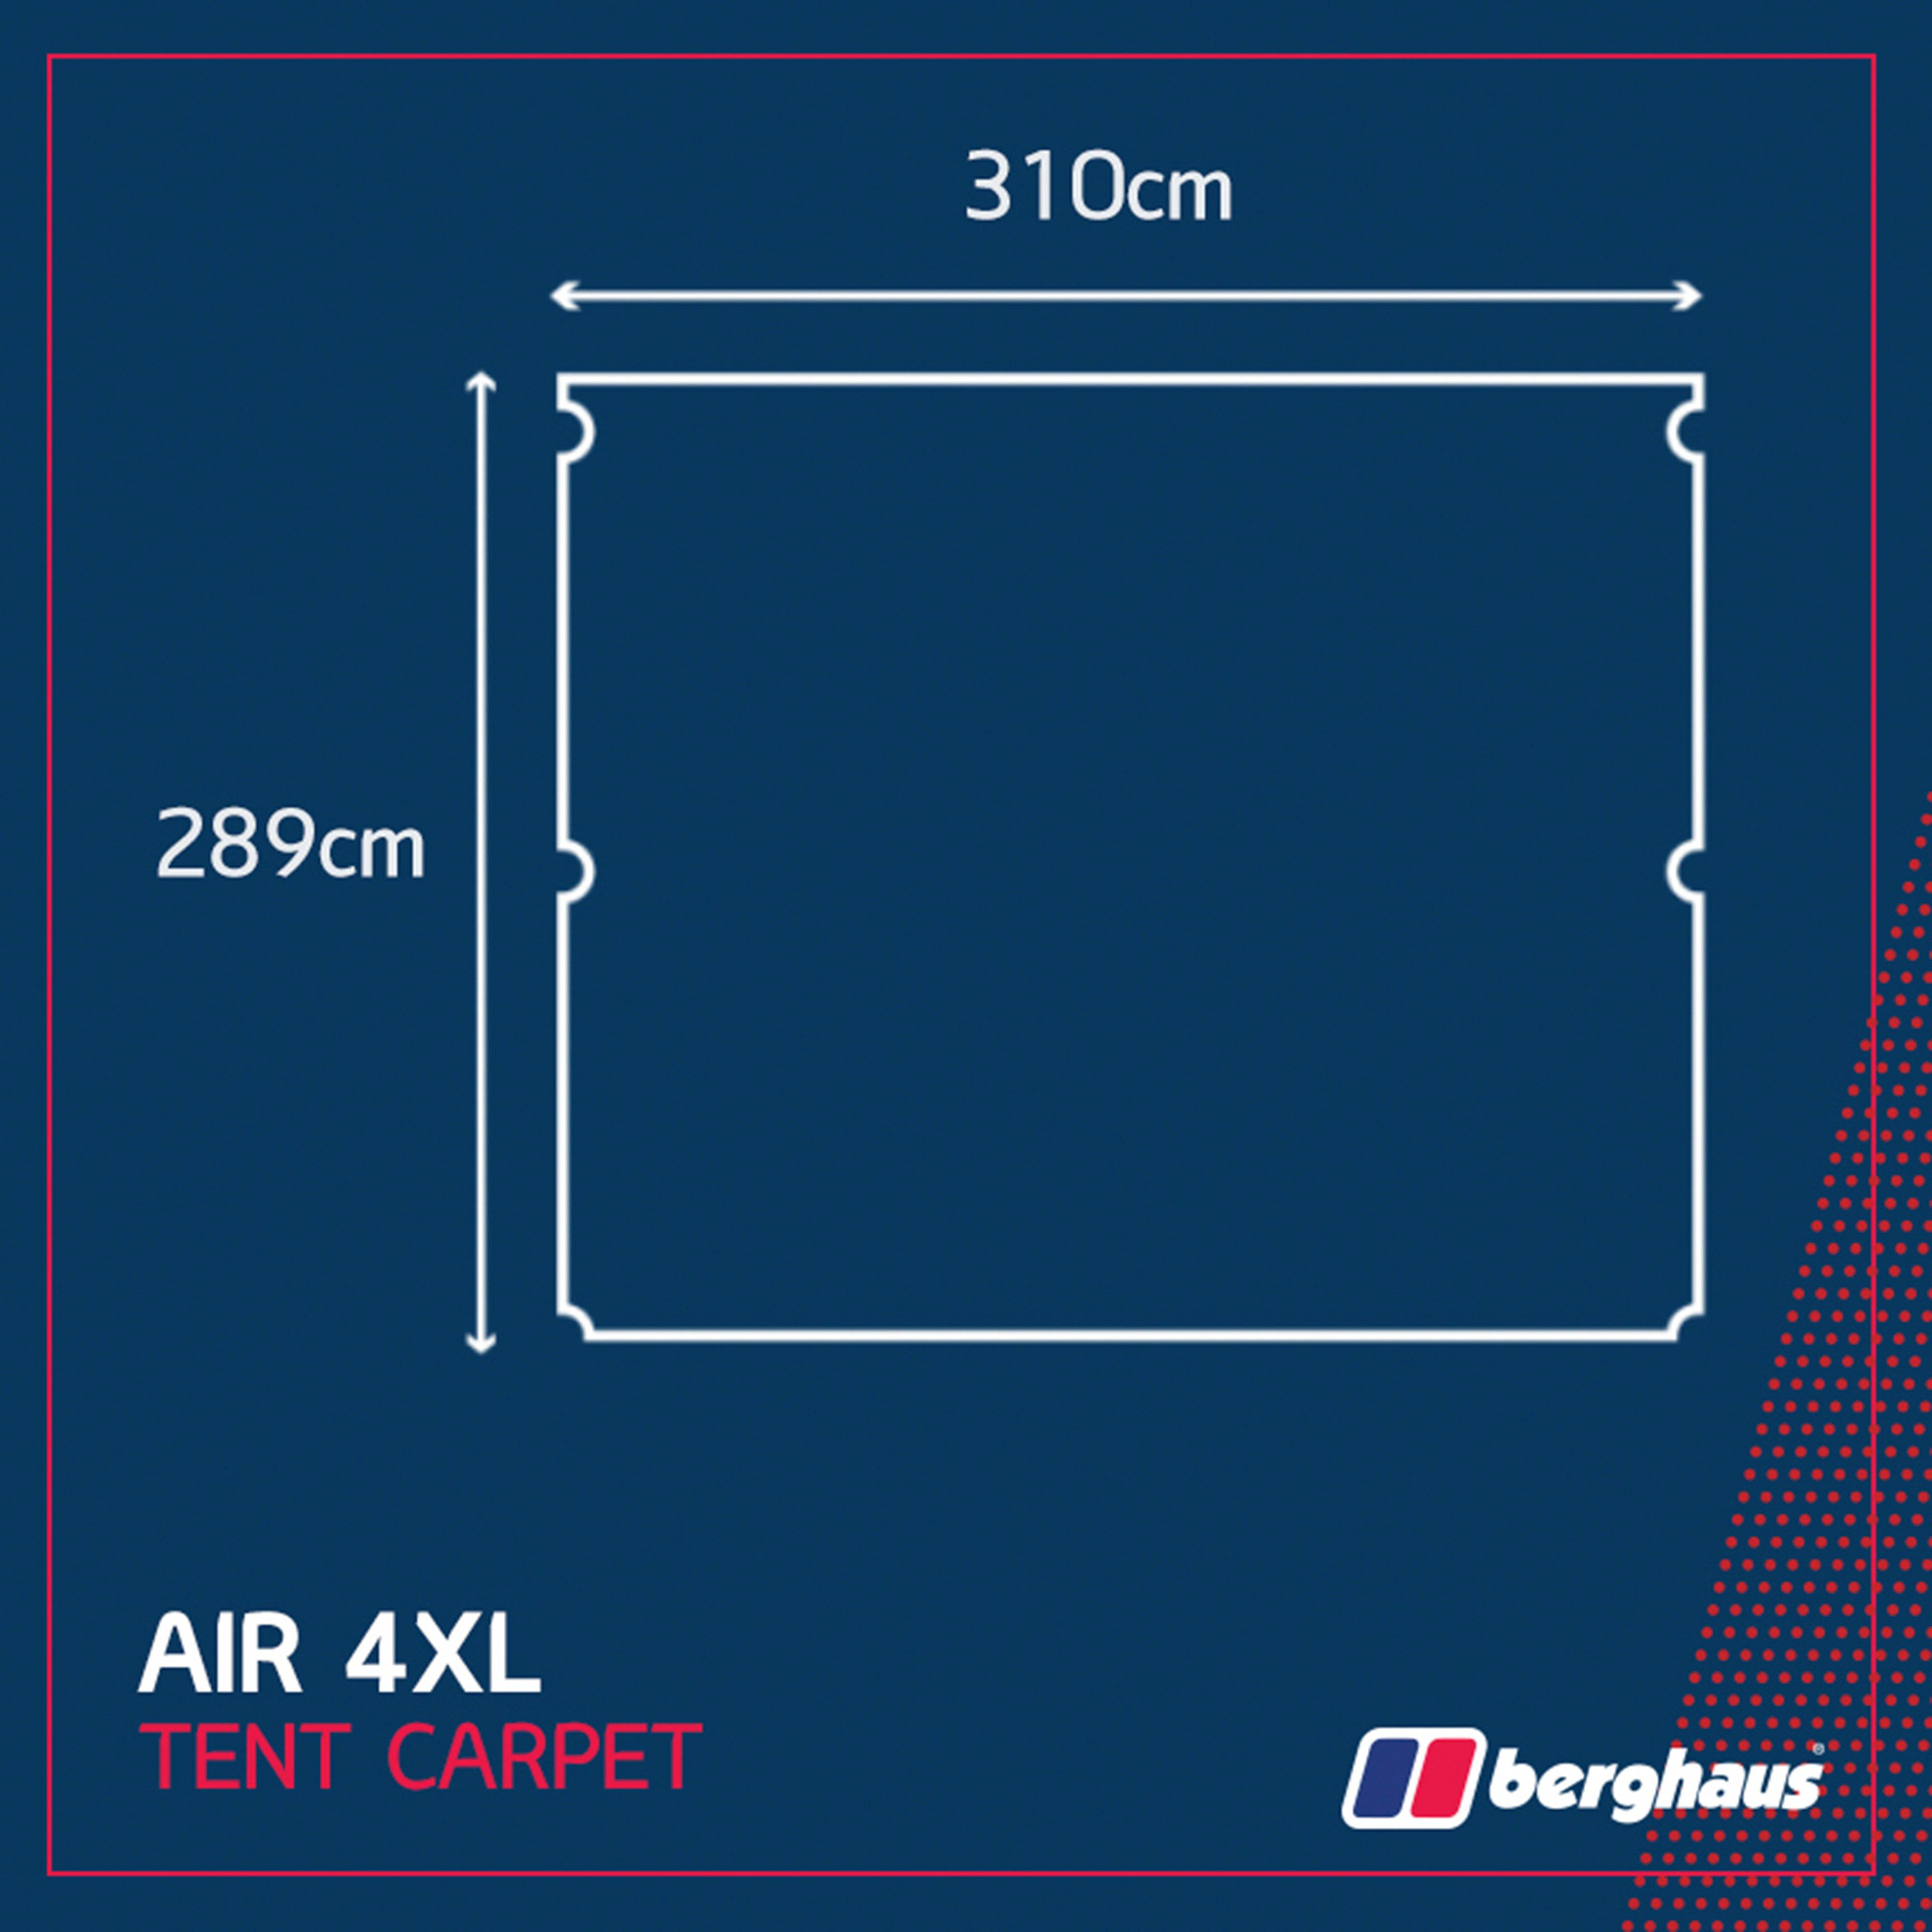 Berghaus Air 4XL Carpet